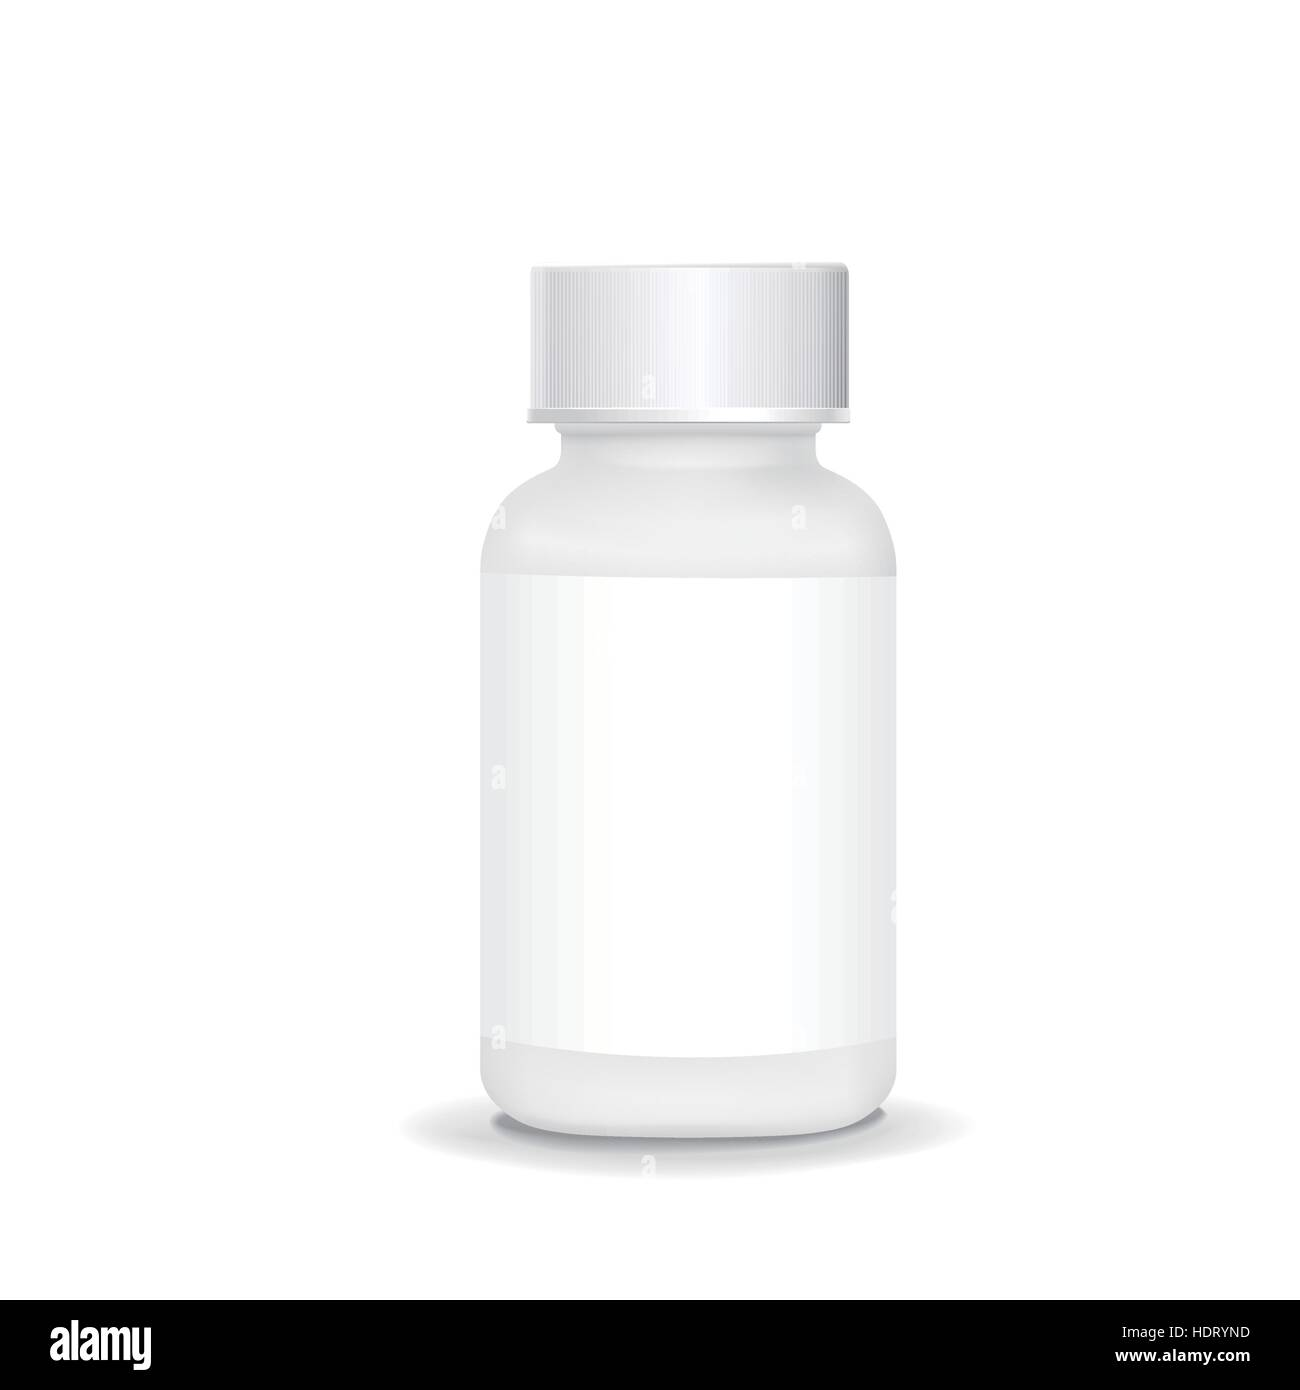 white plastic medical container isolated on white background - Stock Vector